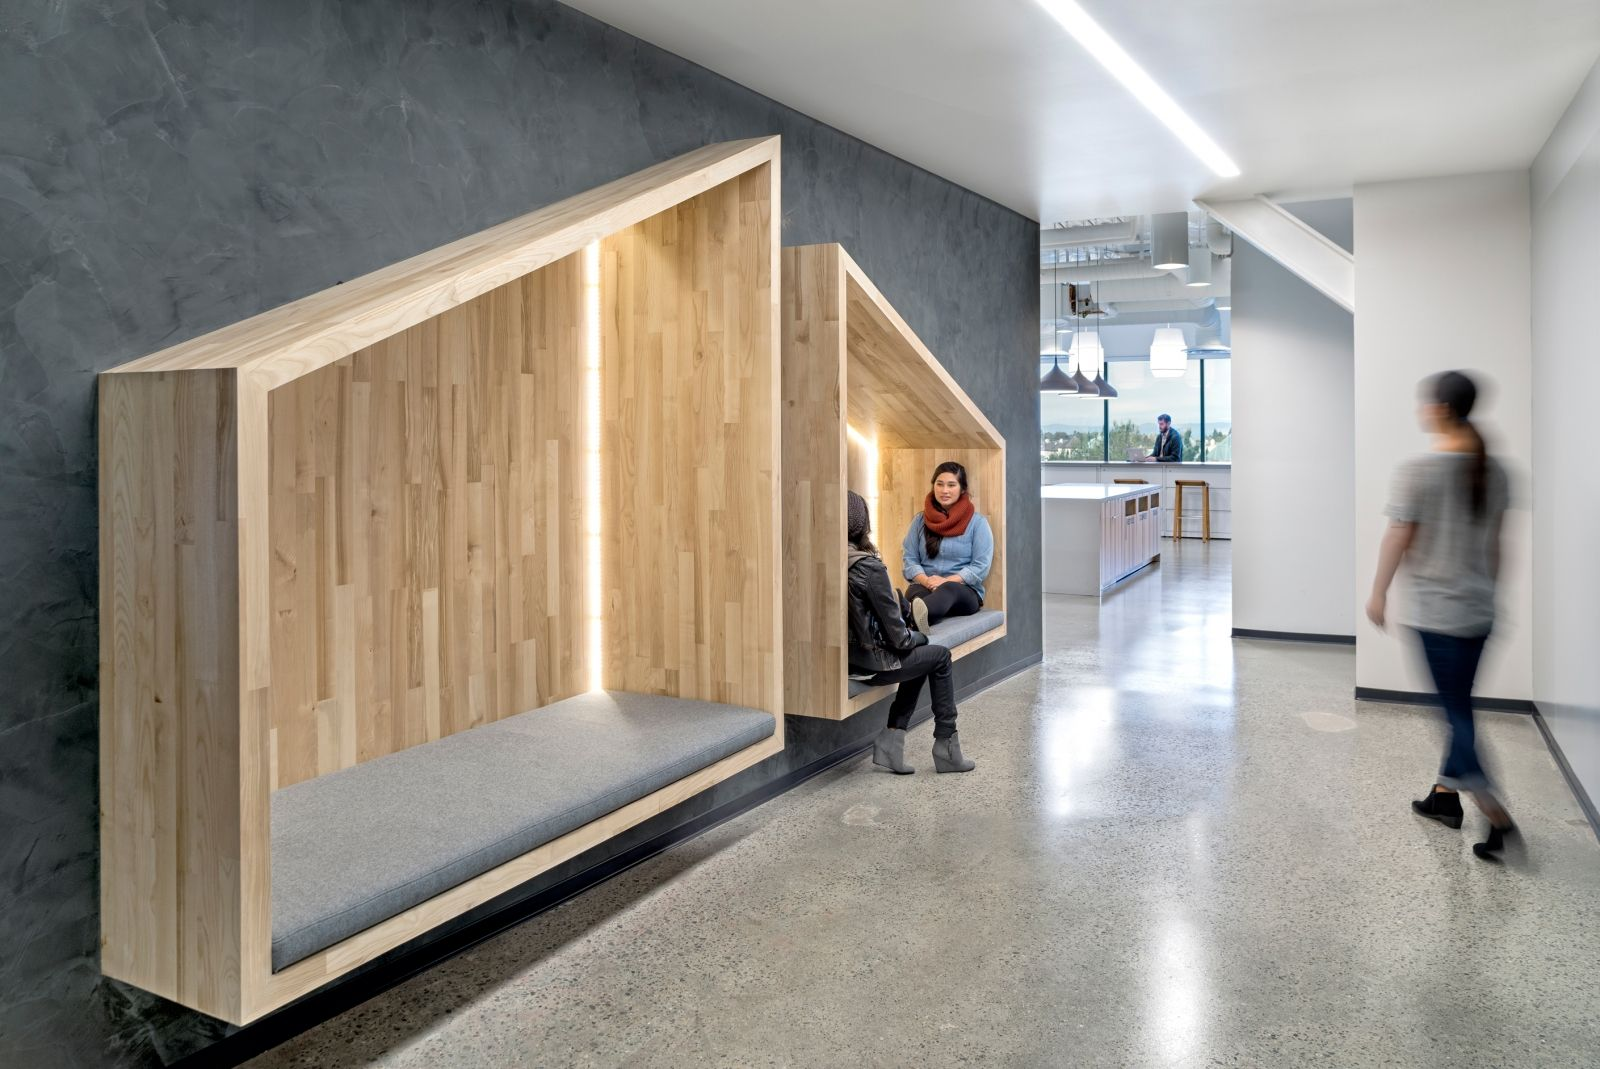 Efficient use of space while creating places for seating - idea for front office new reception area?